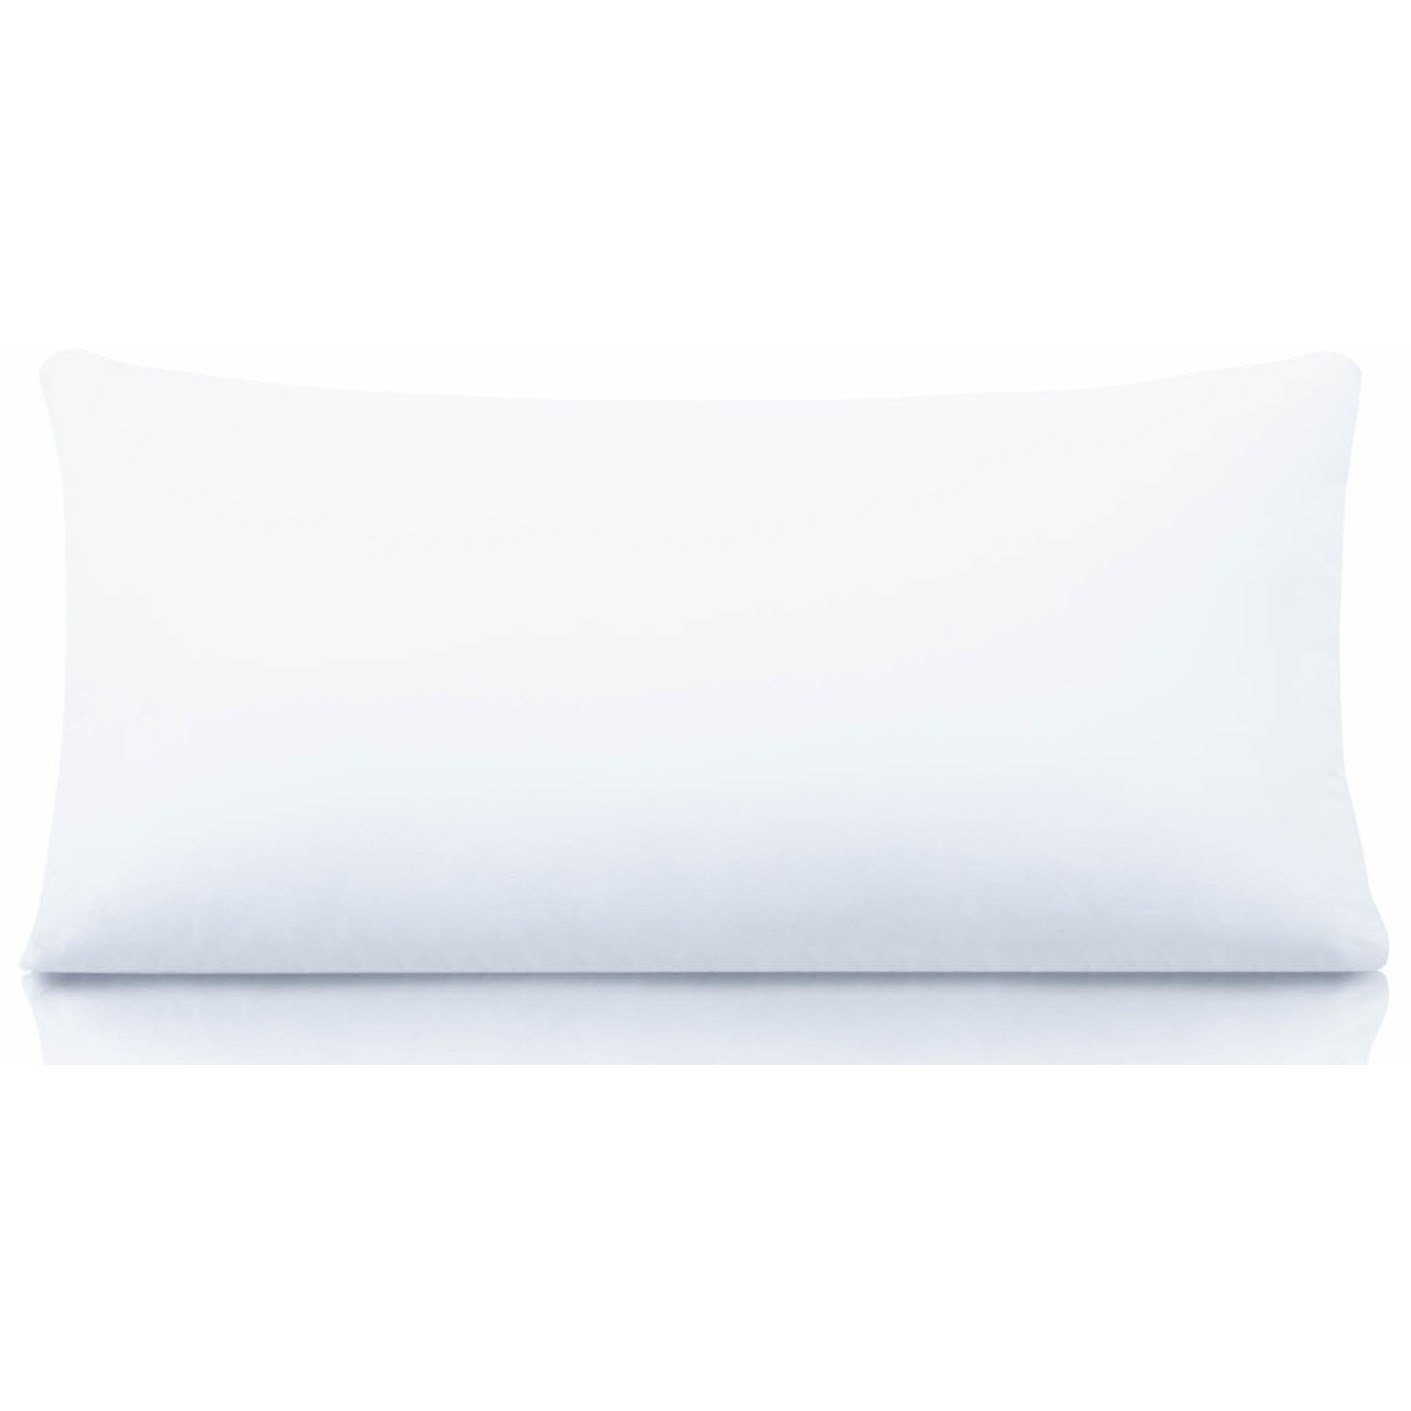 Cotton Encased Down Travel Cotton Encased Down Blend Pillow by Malouf at Furniture Superstore - Rochester, MN